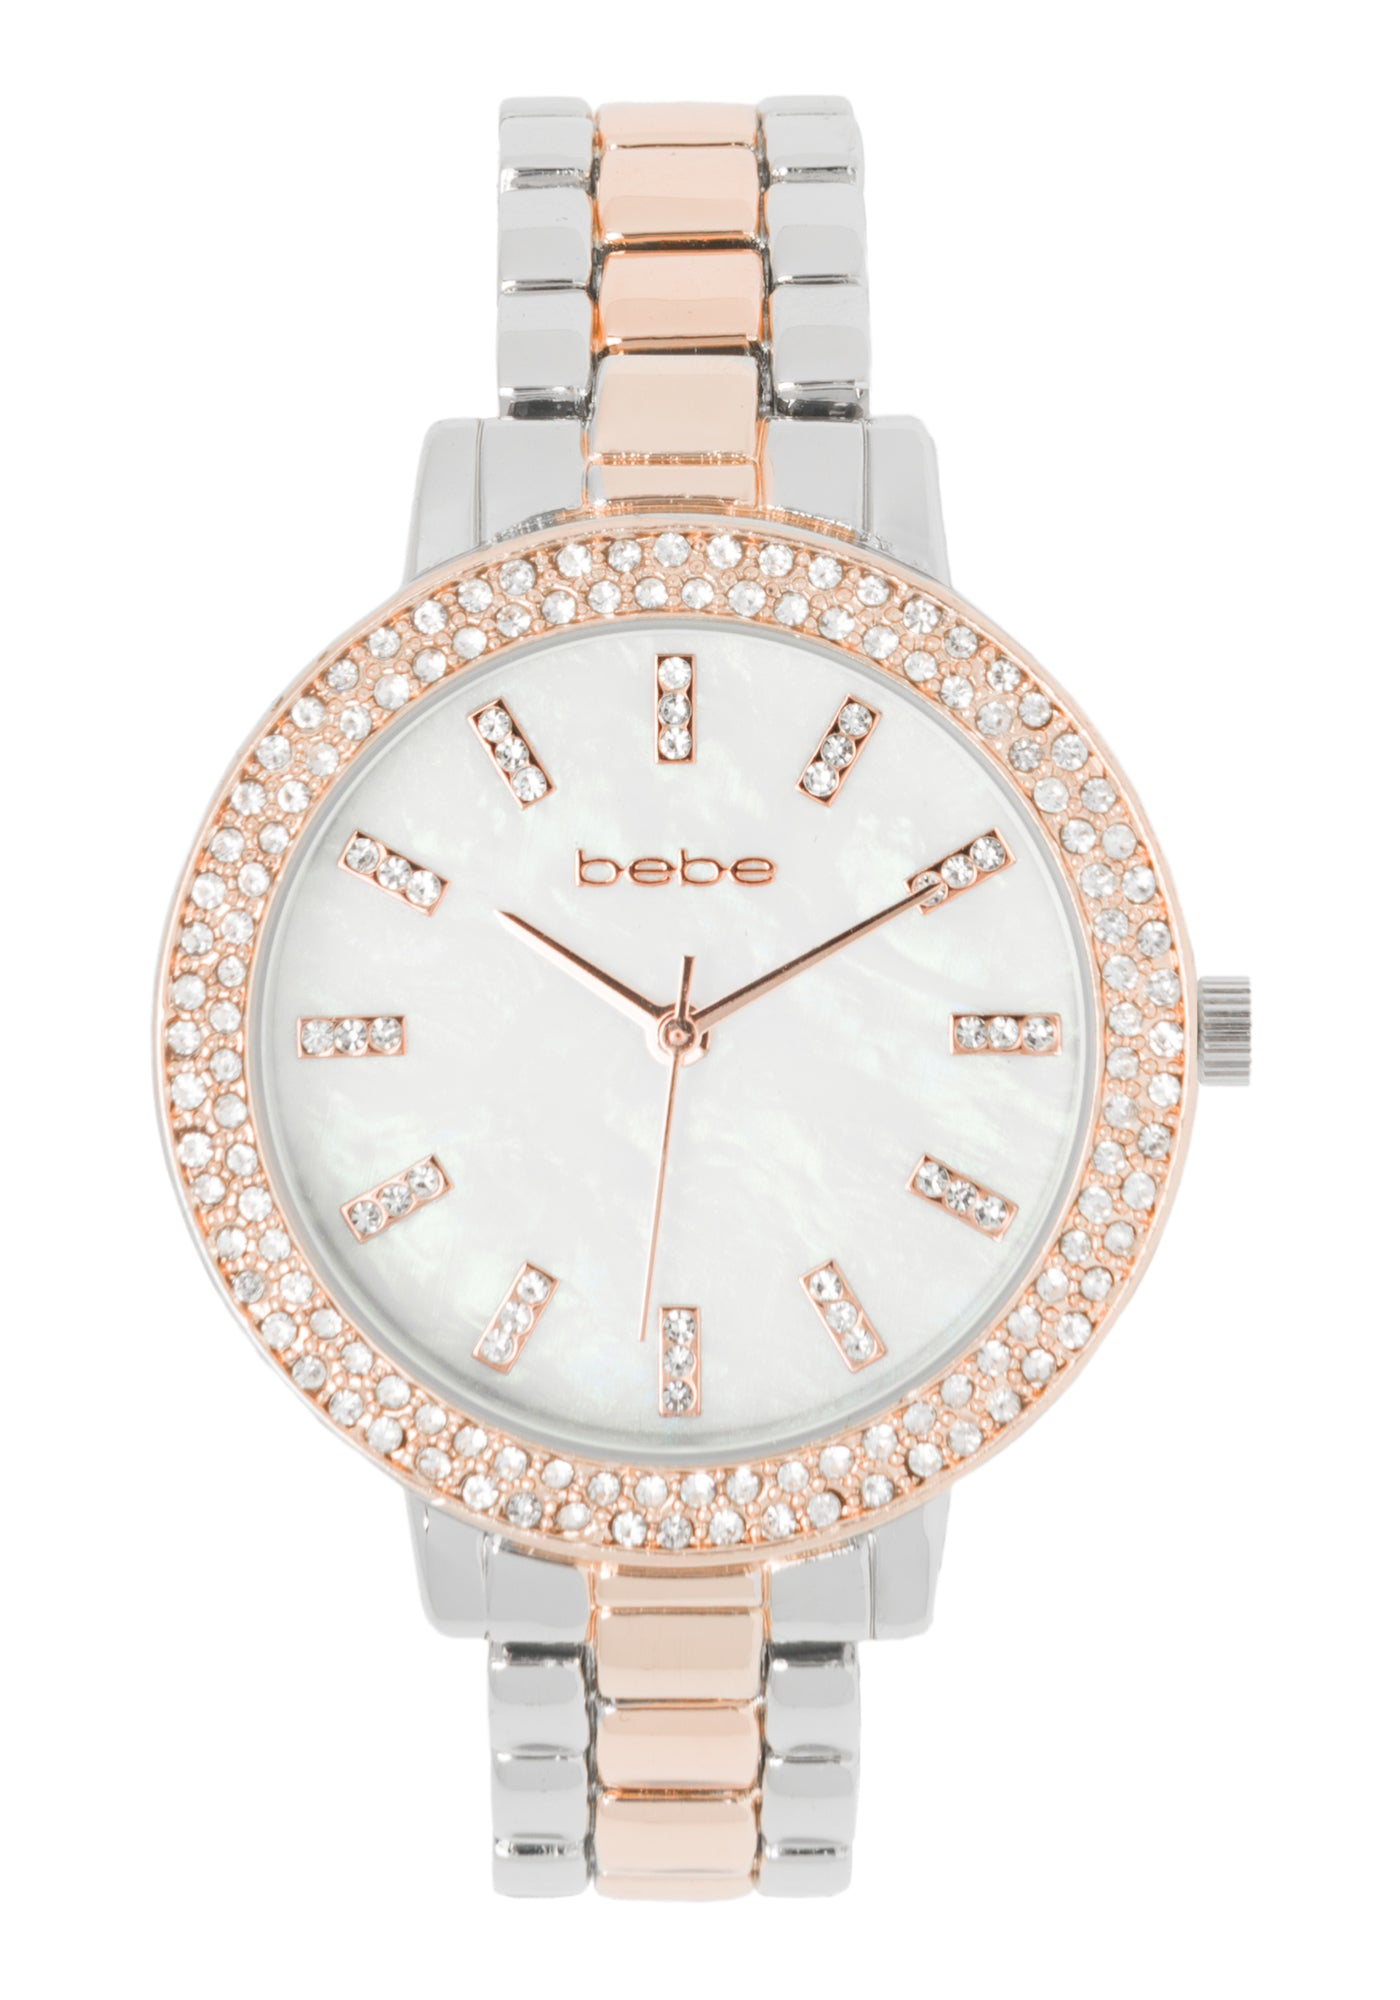 Bebe Women's Mixed Metal Watch Crystal